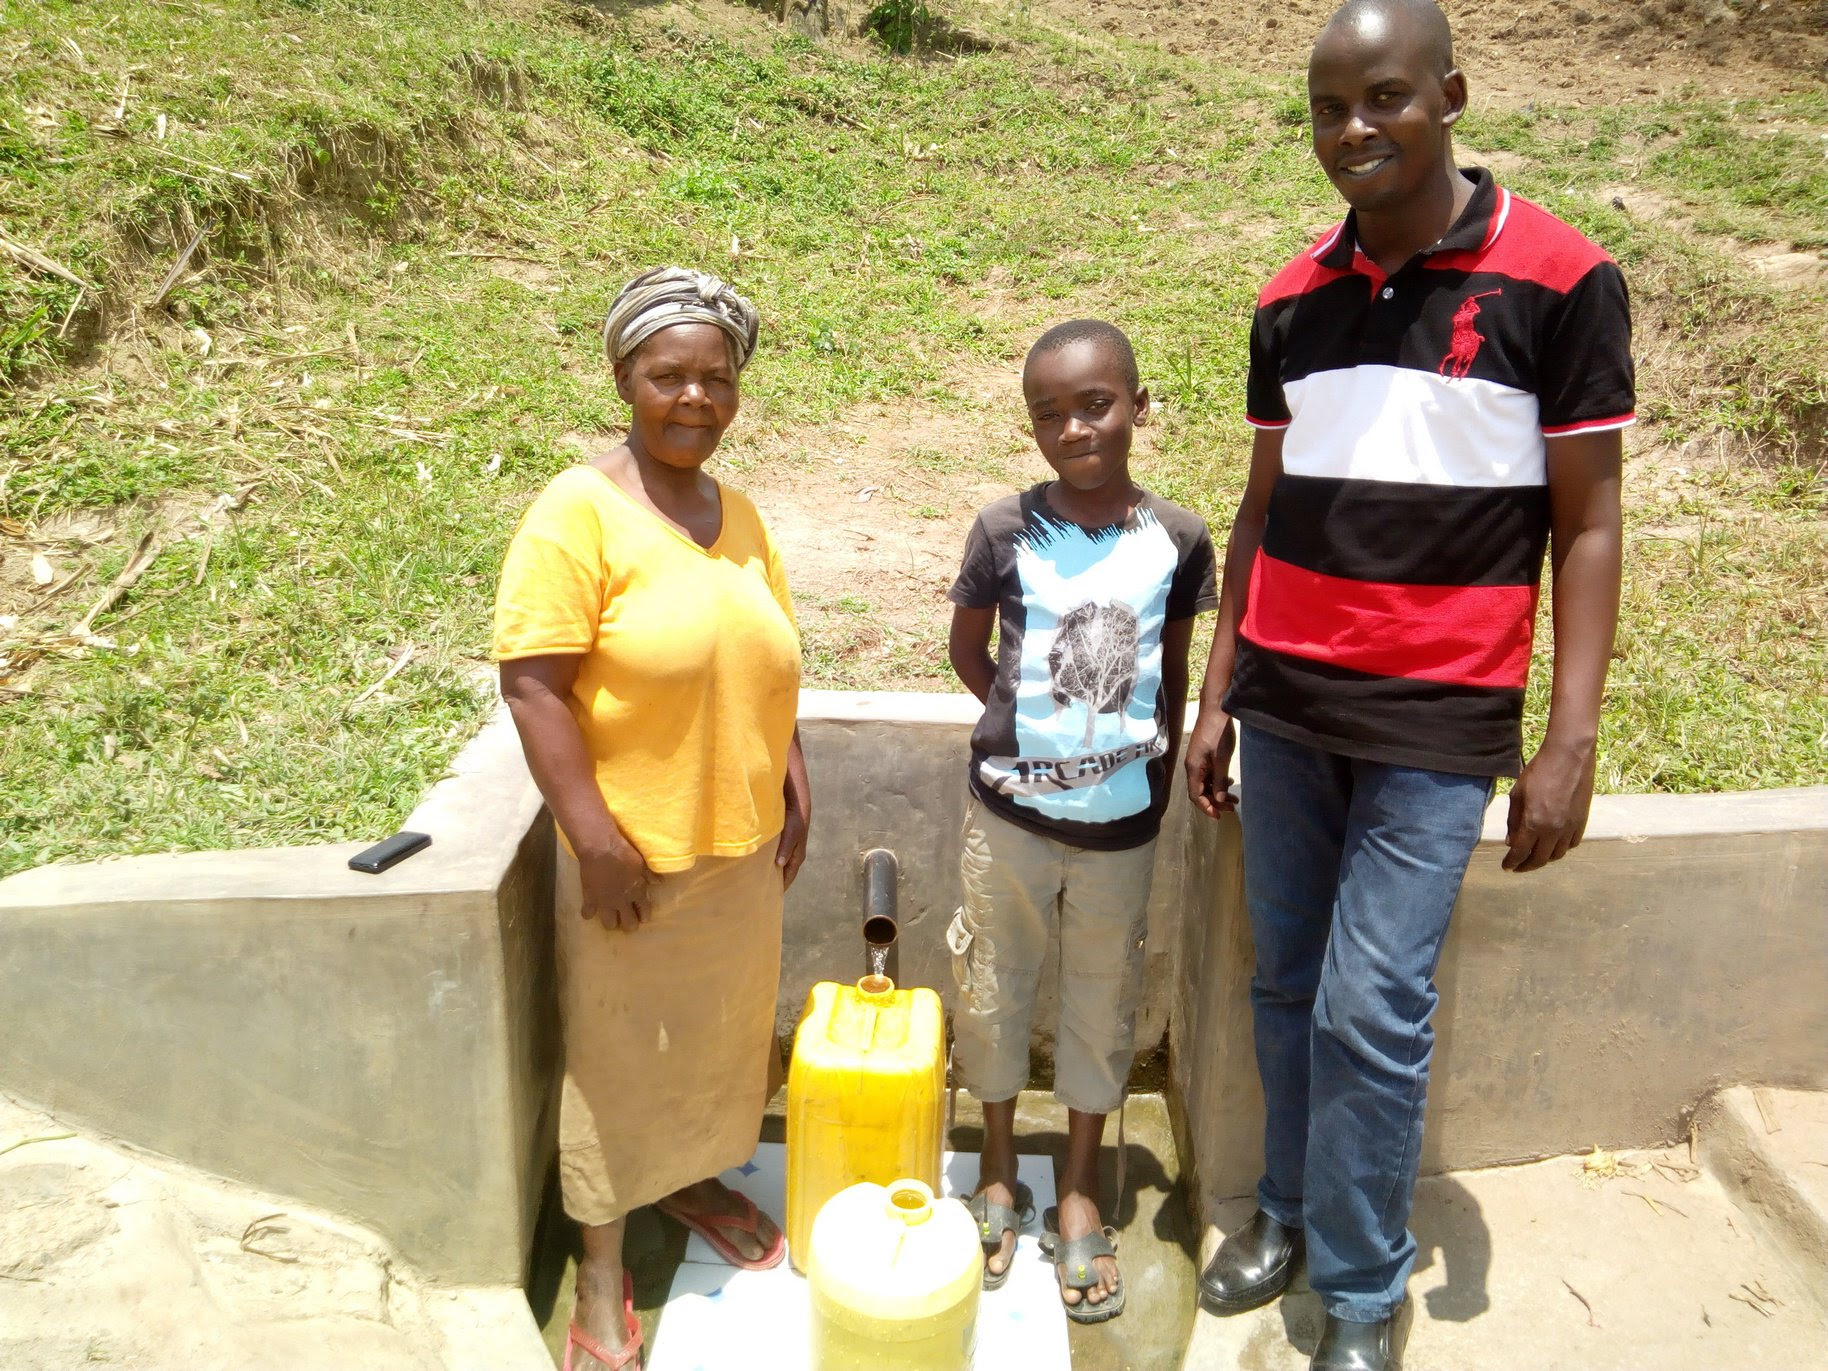 NEW update from the Water Project in Kenya – Handidi Community